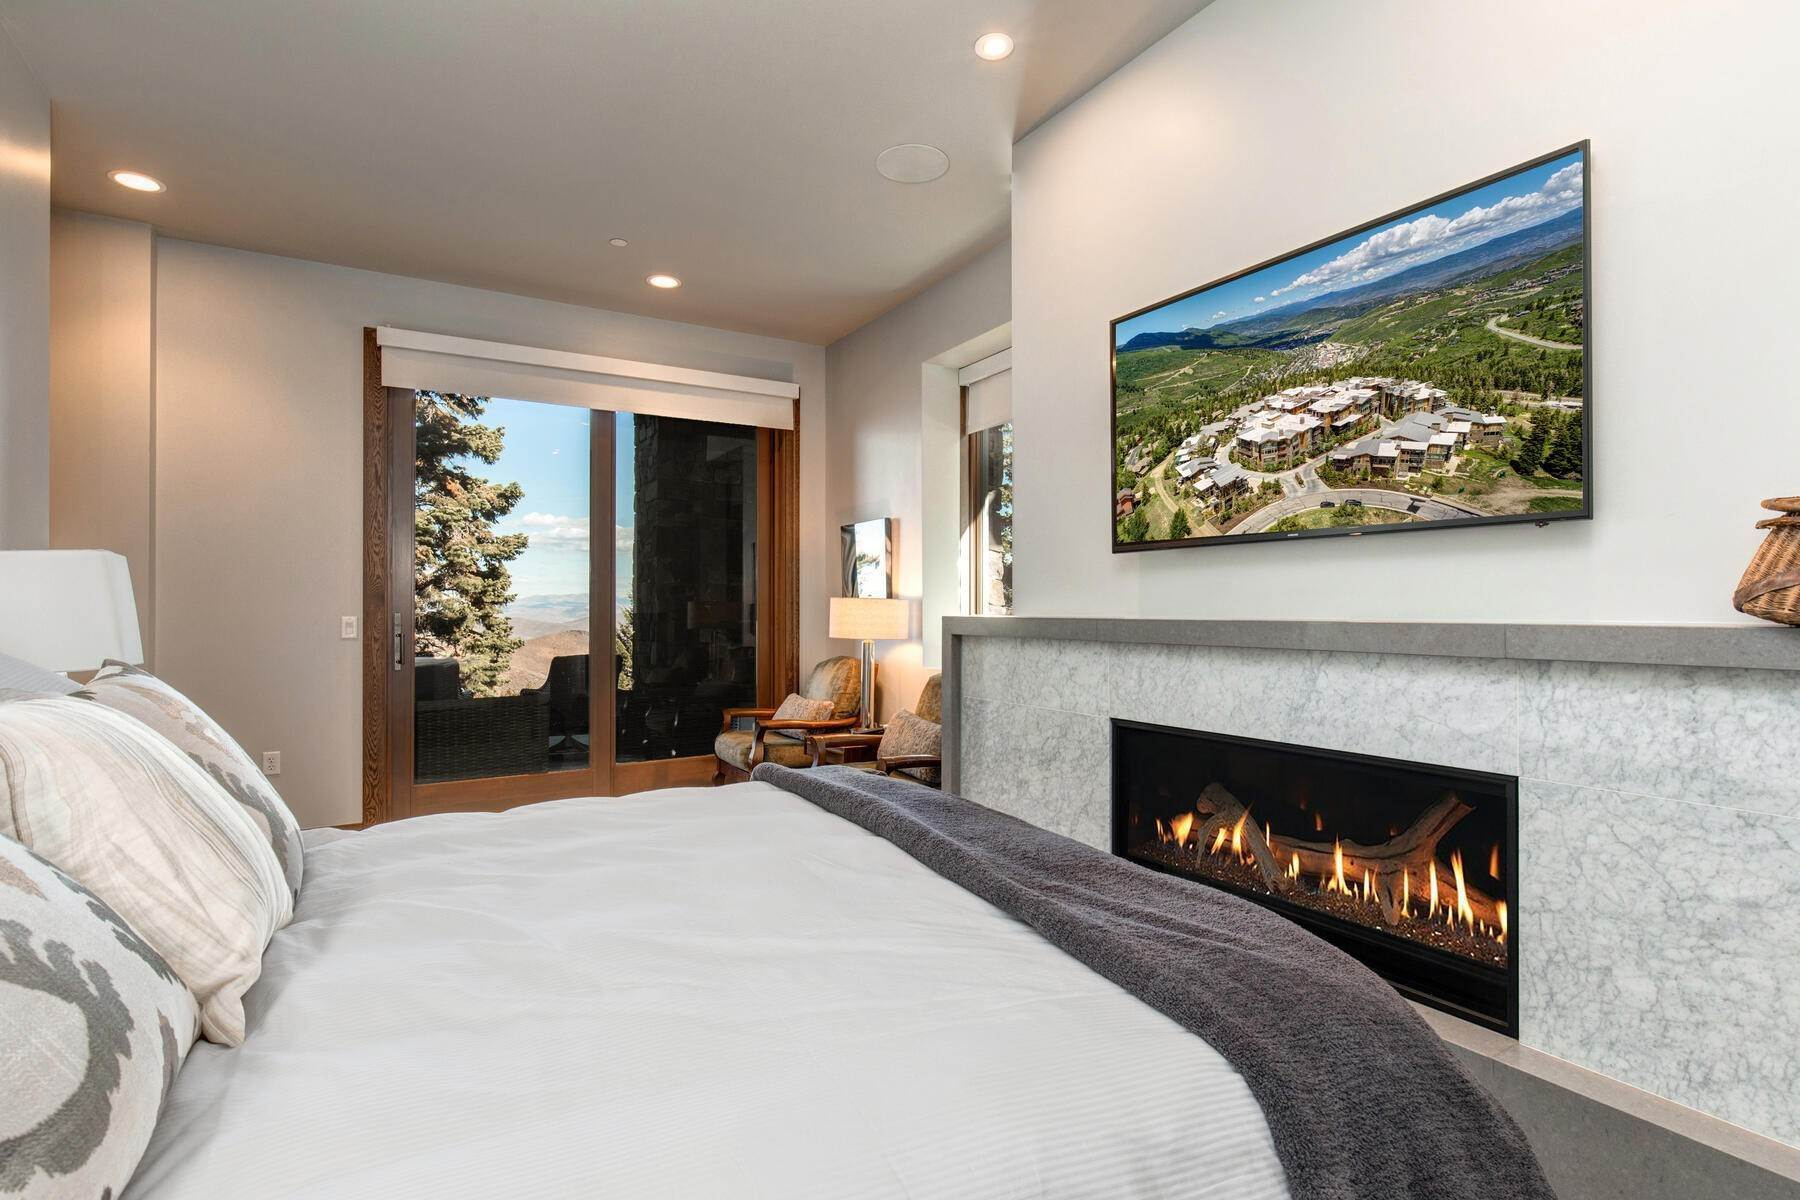 24. Condominiums for Sale at Ski-In Ski-Out Alpine Luxury Living at Stein Eriksen Residences 6702 Stein Circle #131 Park City, Utah 84060 United States